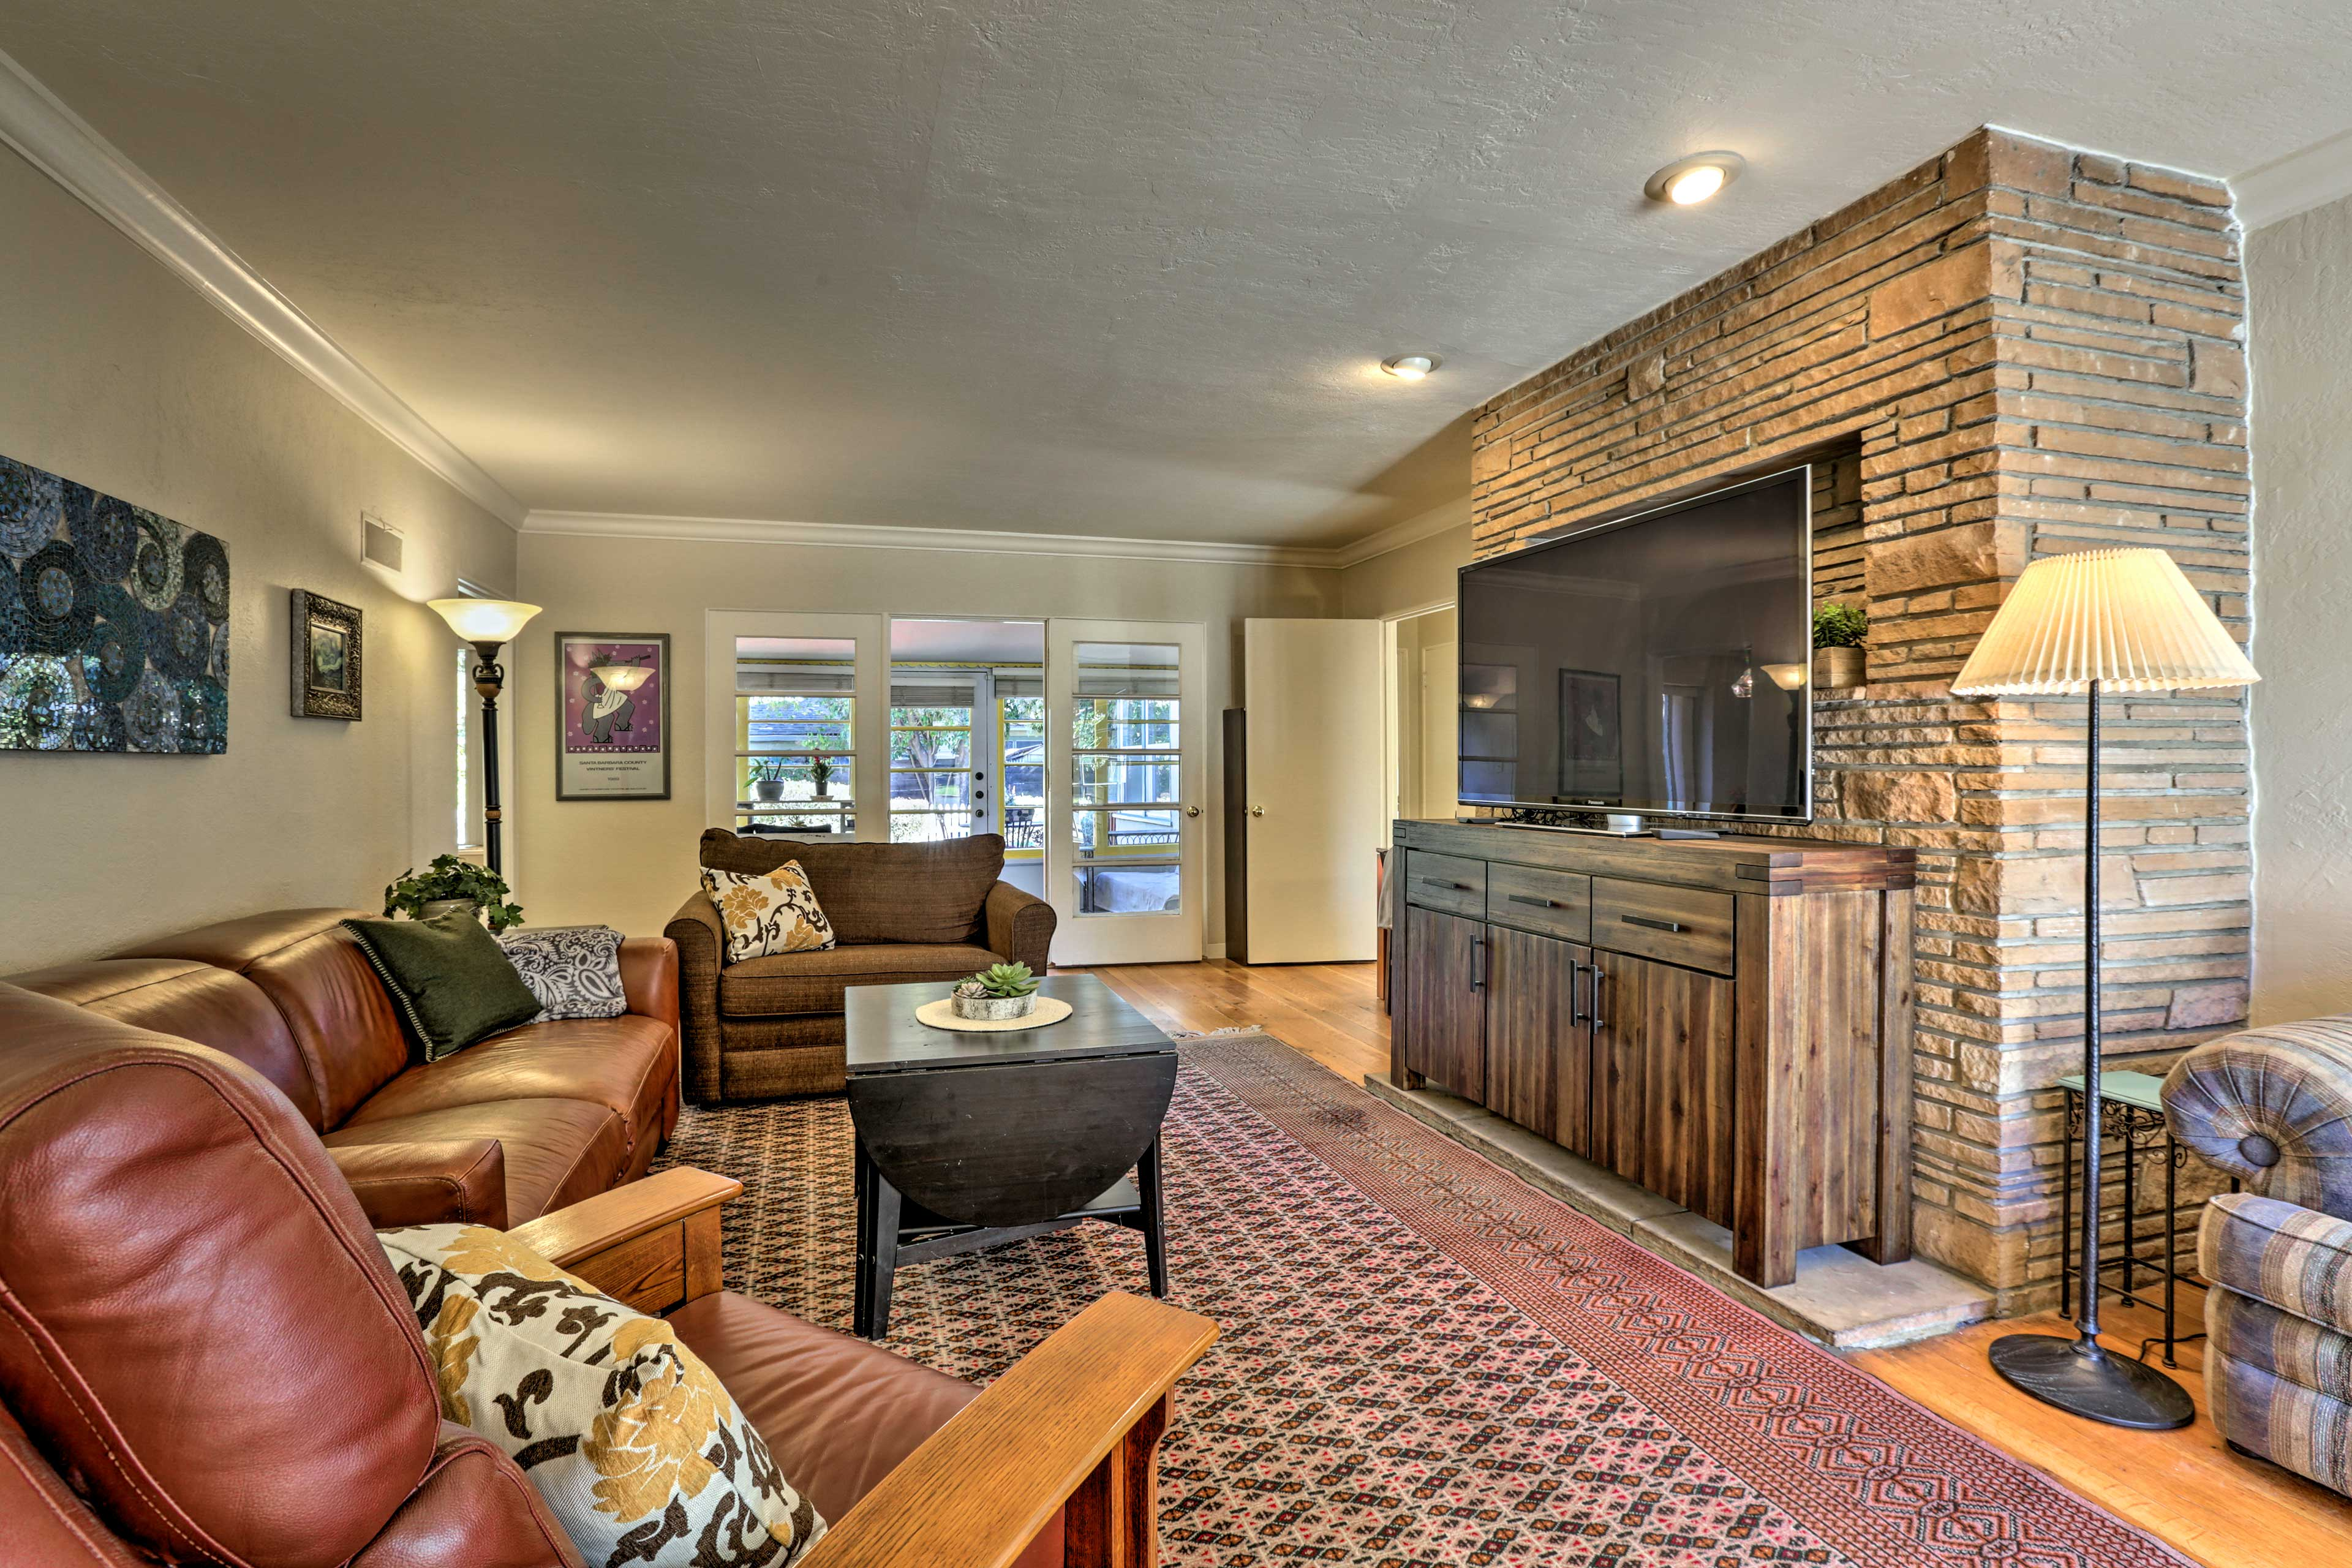 You'll feel right at home in this cozy abode, complete with modern amenities.